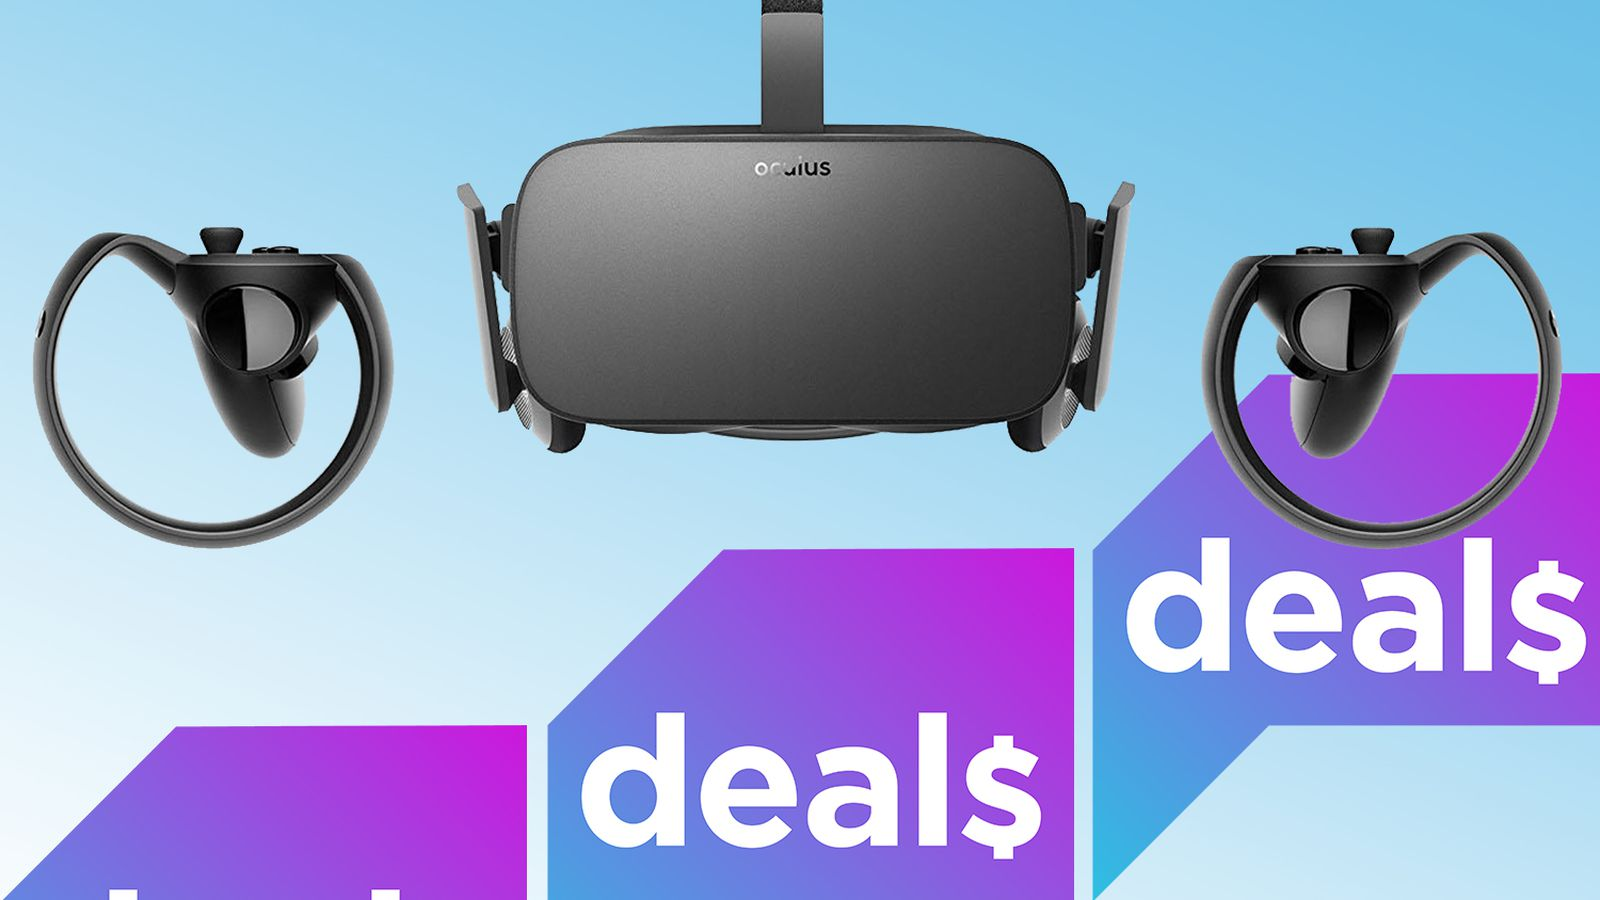 Best game deals of the week: Nintendo 3DS, Oculus Rift bundle and more